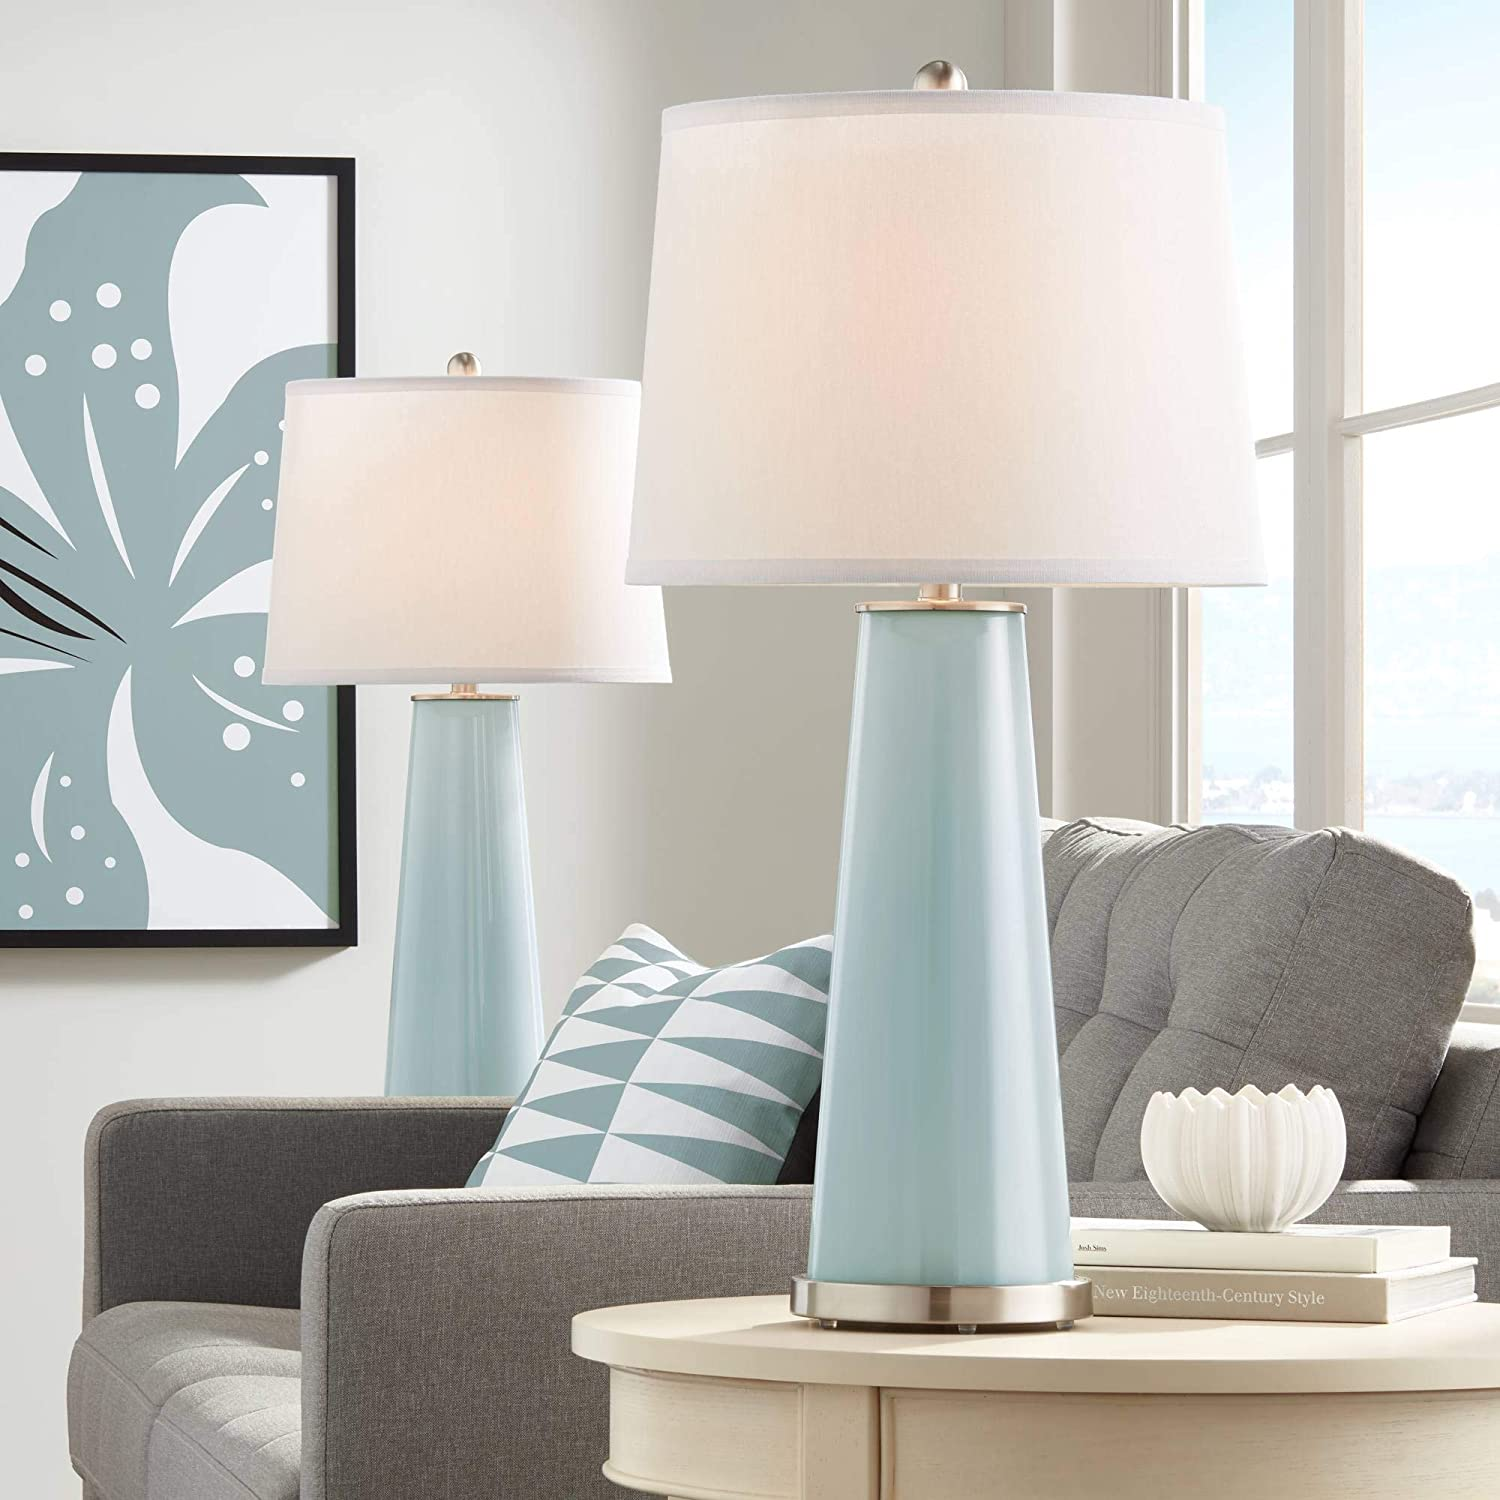 5 wide at the top and 7 tall Marble pattern Colorful swirl lamp shade Shade is 9.5 wide at the bottom